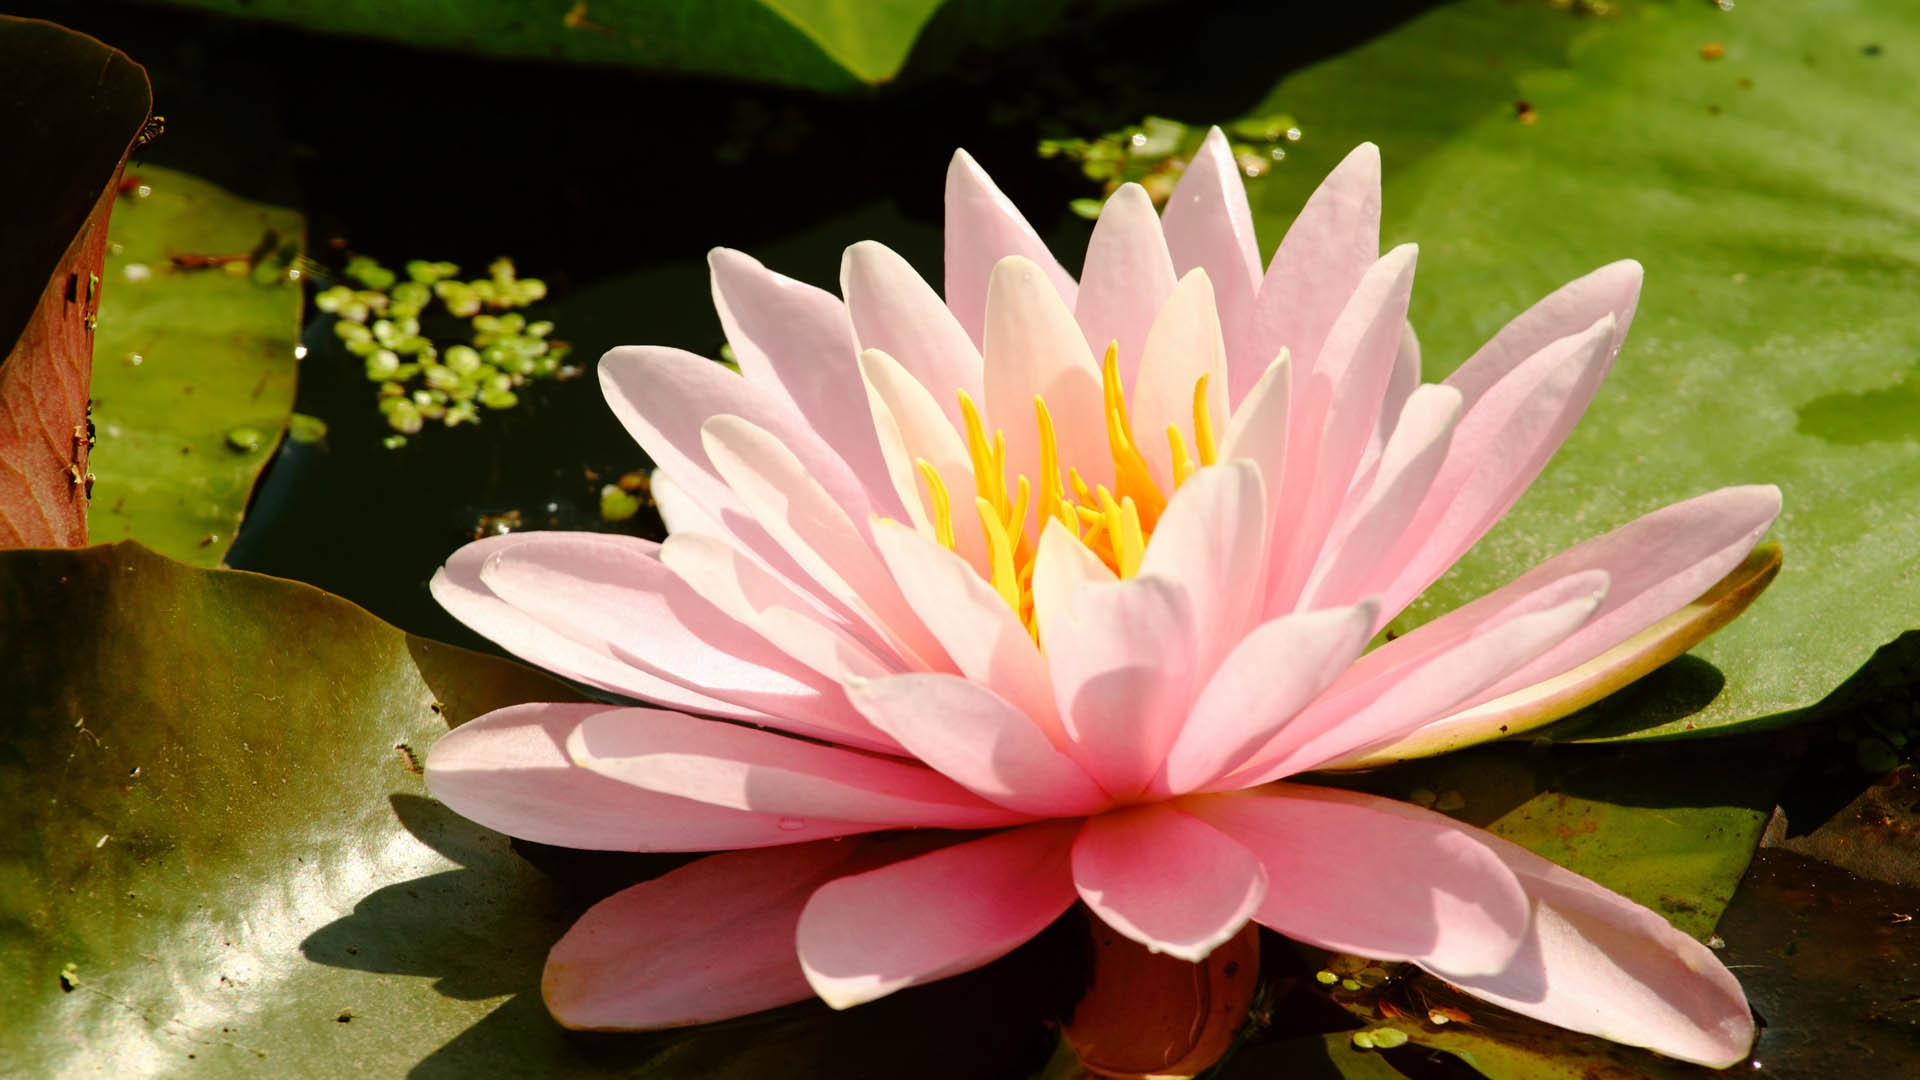 Lotus flower wallpapers pictures images lotus flower wallpaper izmirmasajfo